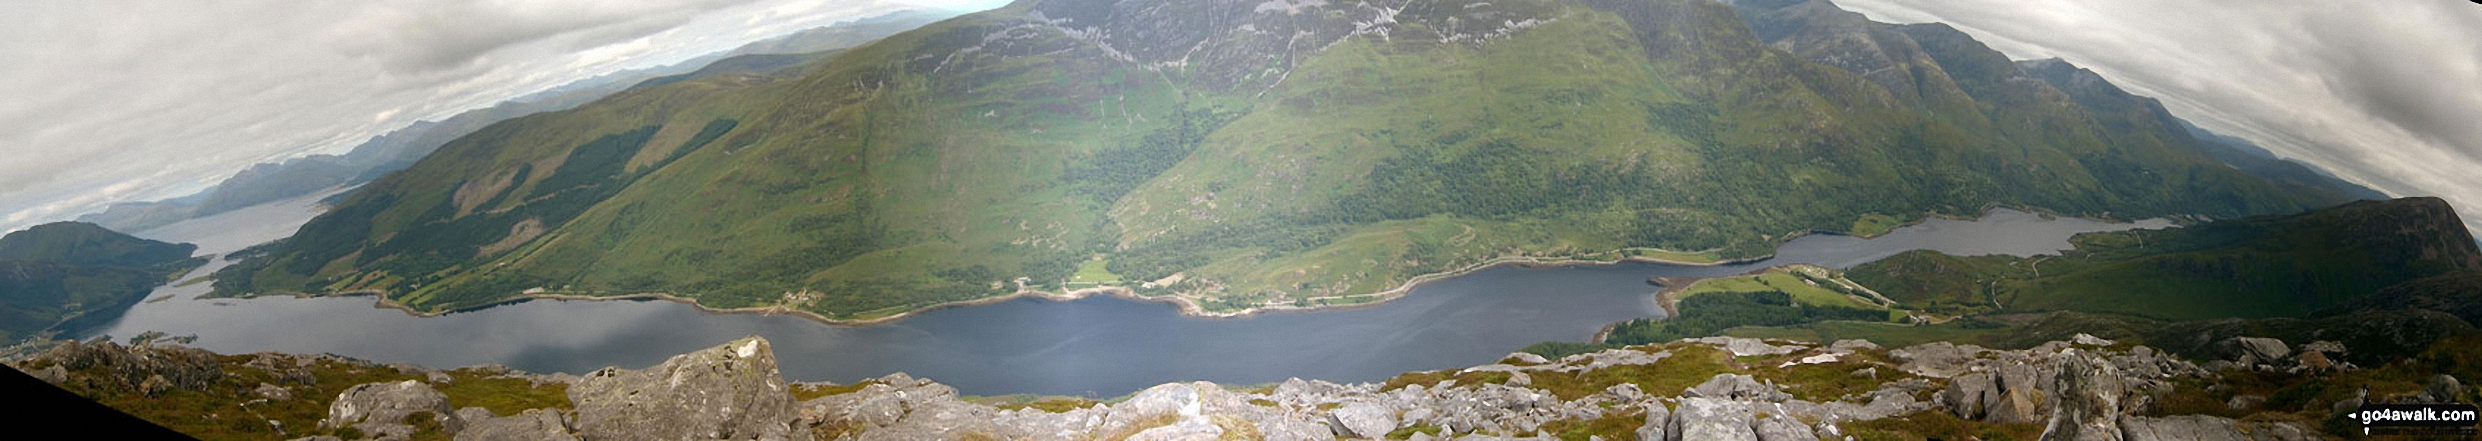 *Loch Linhhe (left), Loch Leven, Mam na Gualainn and Kinlochleven (far right) from the summit of Sgorr na Ciche (Pap of Glen Coe)